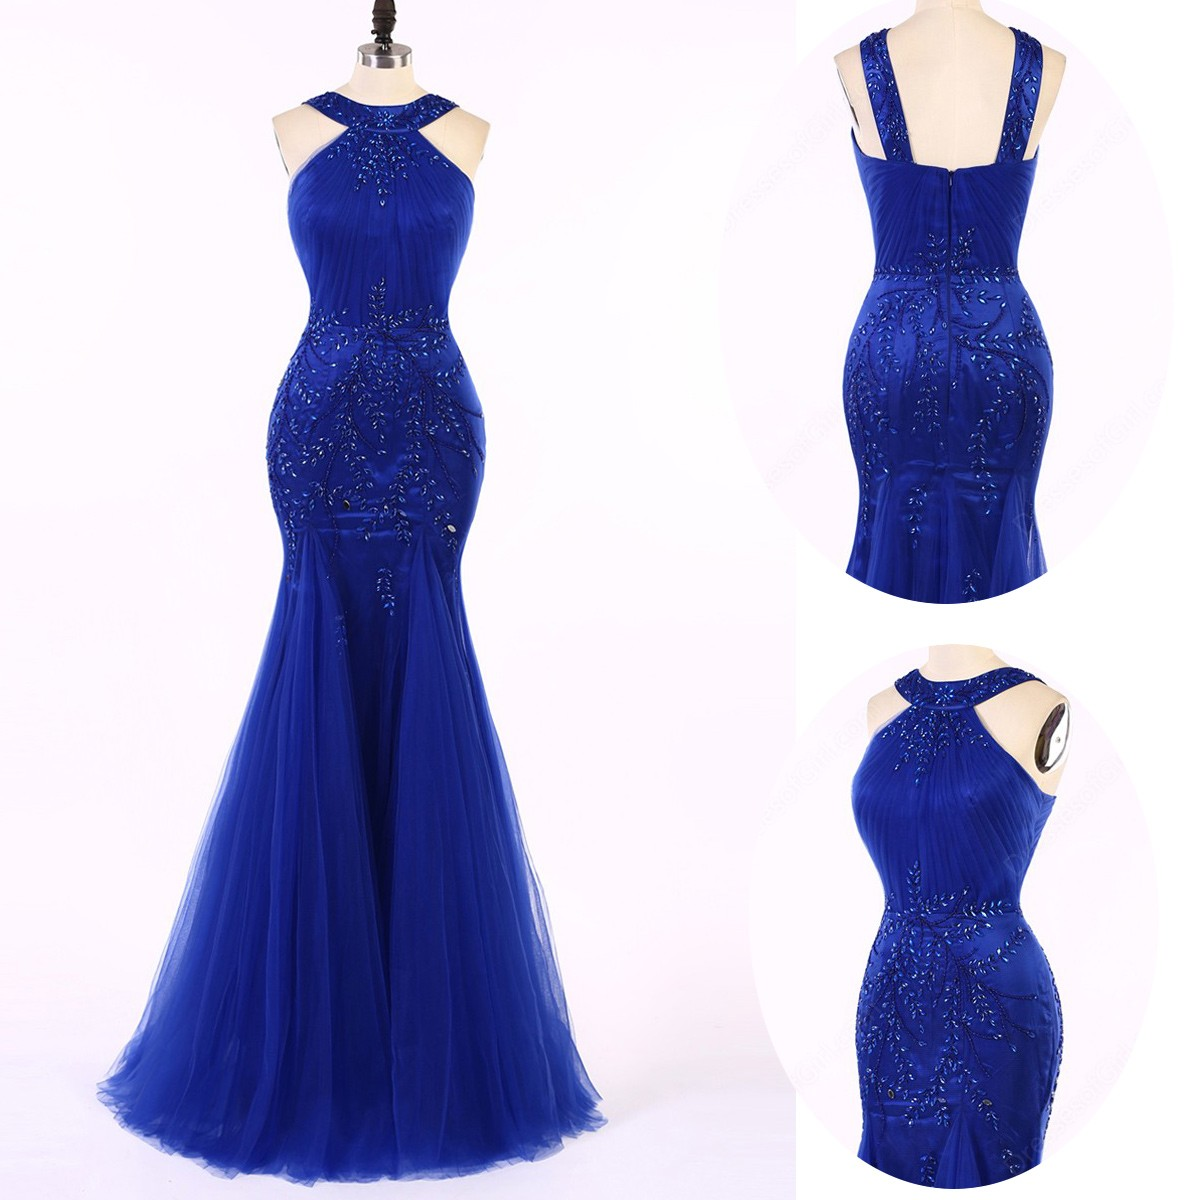 Elegant Straps Beading Royal Blue Mermaid Prom Dress Formal Evening Gown